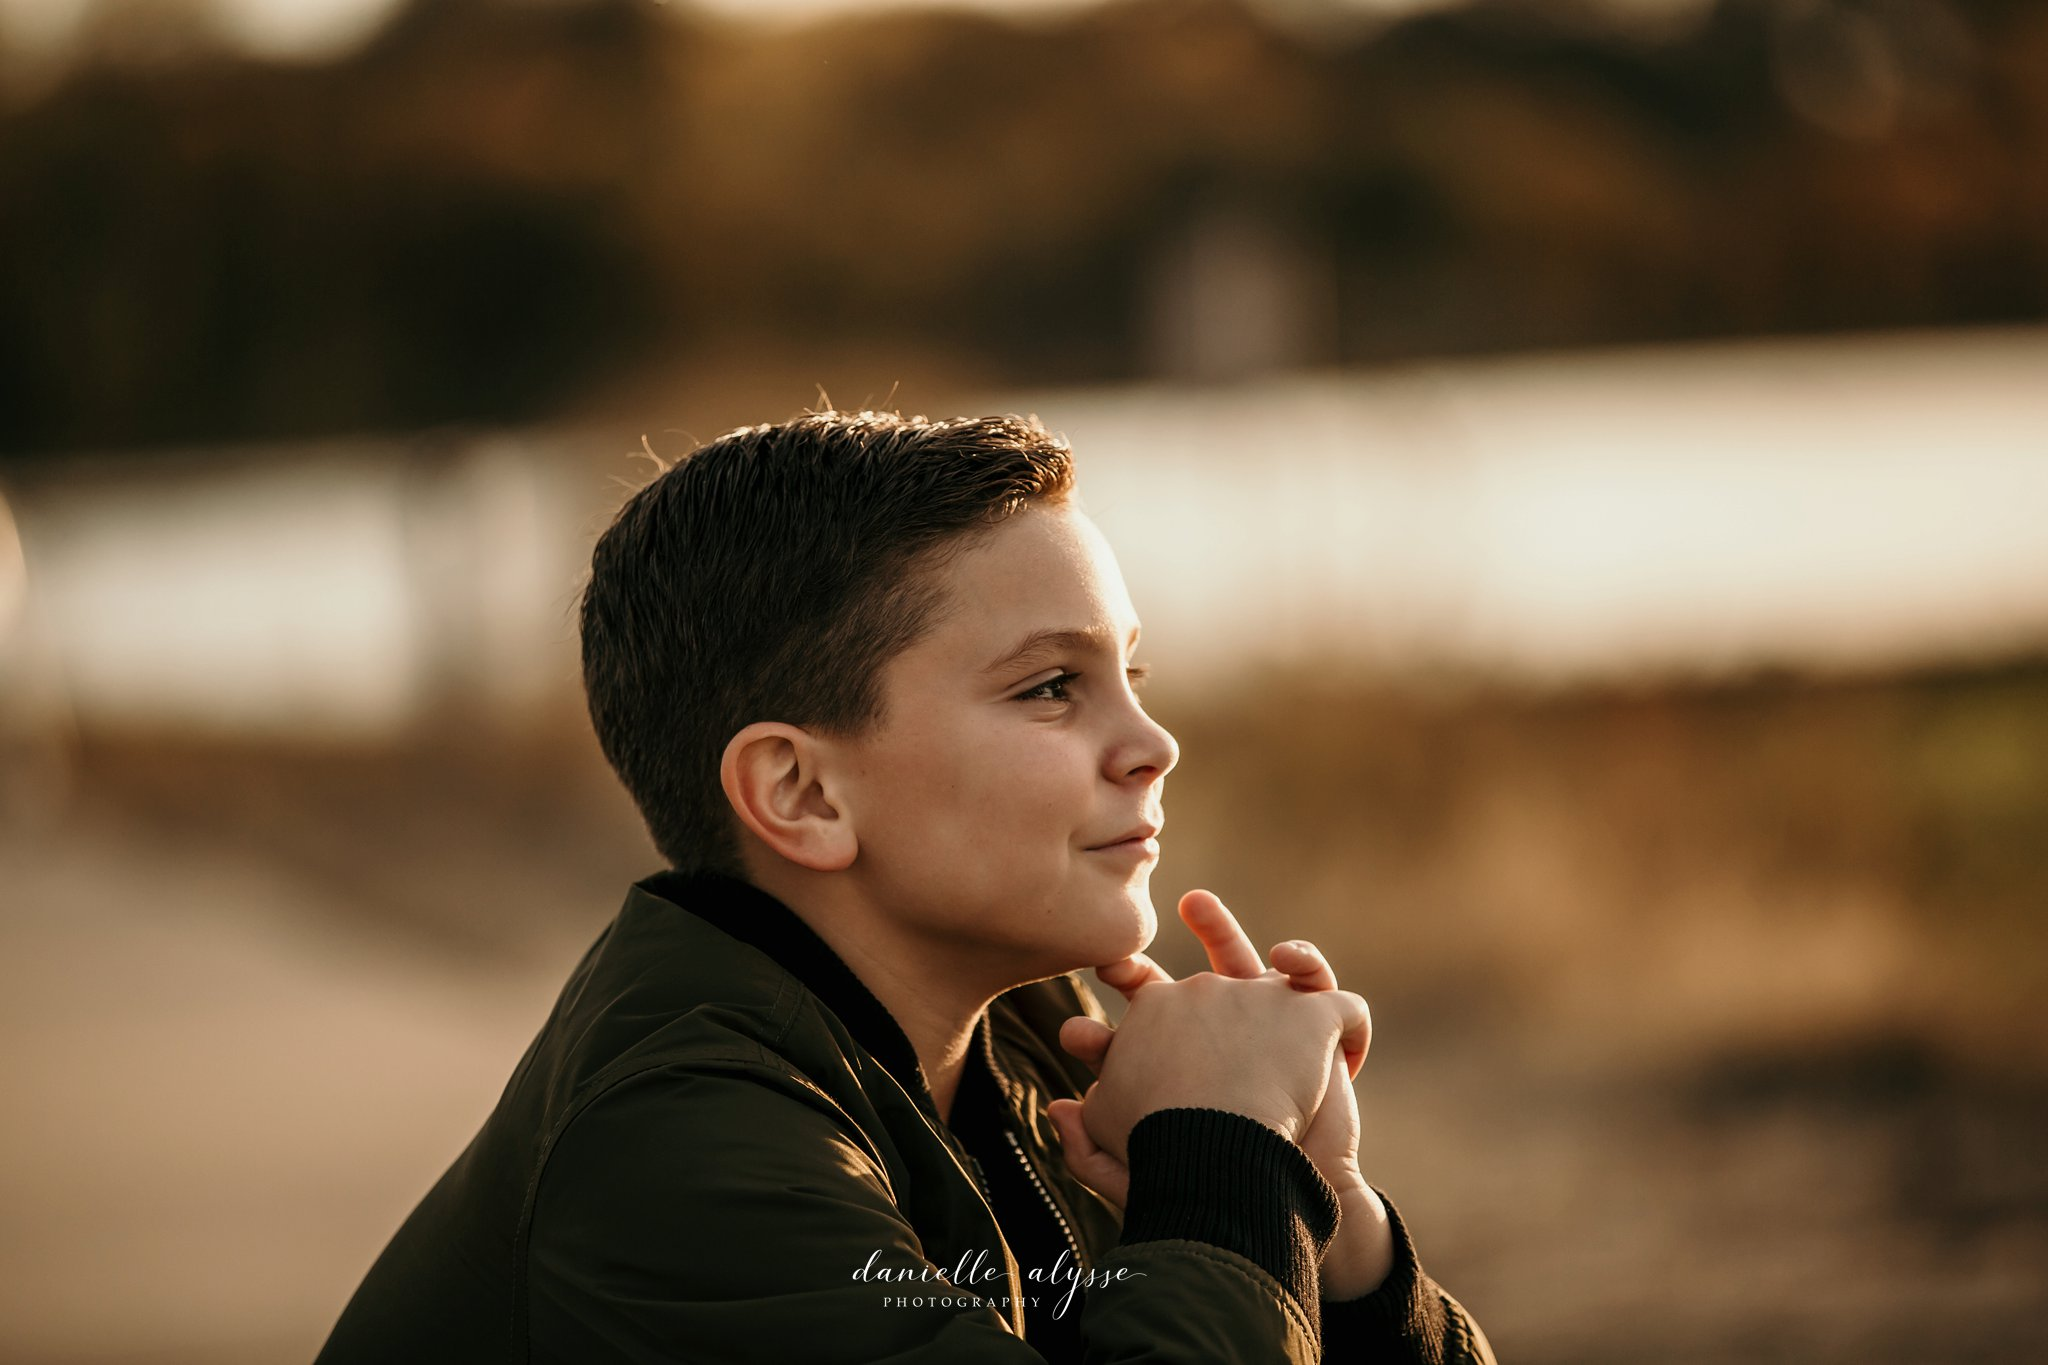 181125_fall_family_portrait_cosumnes_river_preserve_brittney_danielle_alysse_photography_23_WEB.jpg